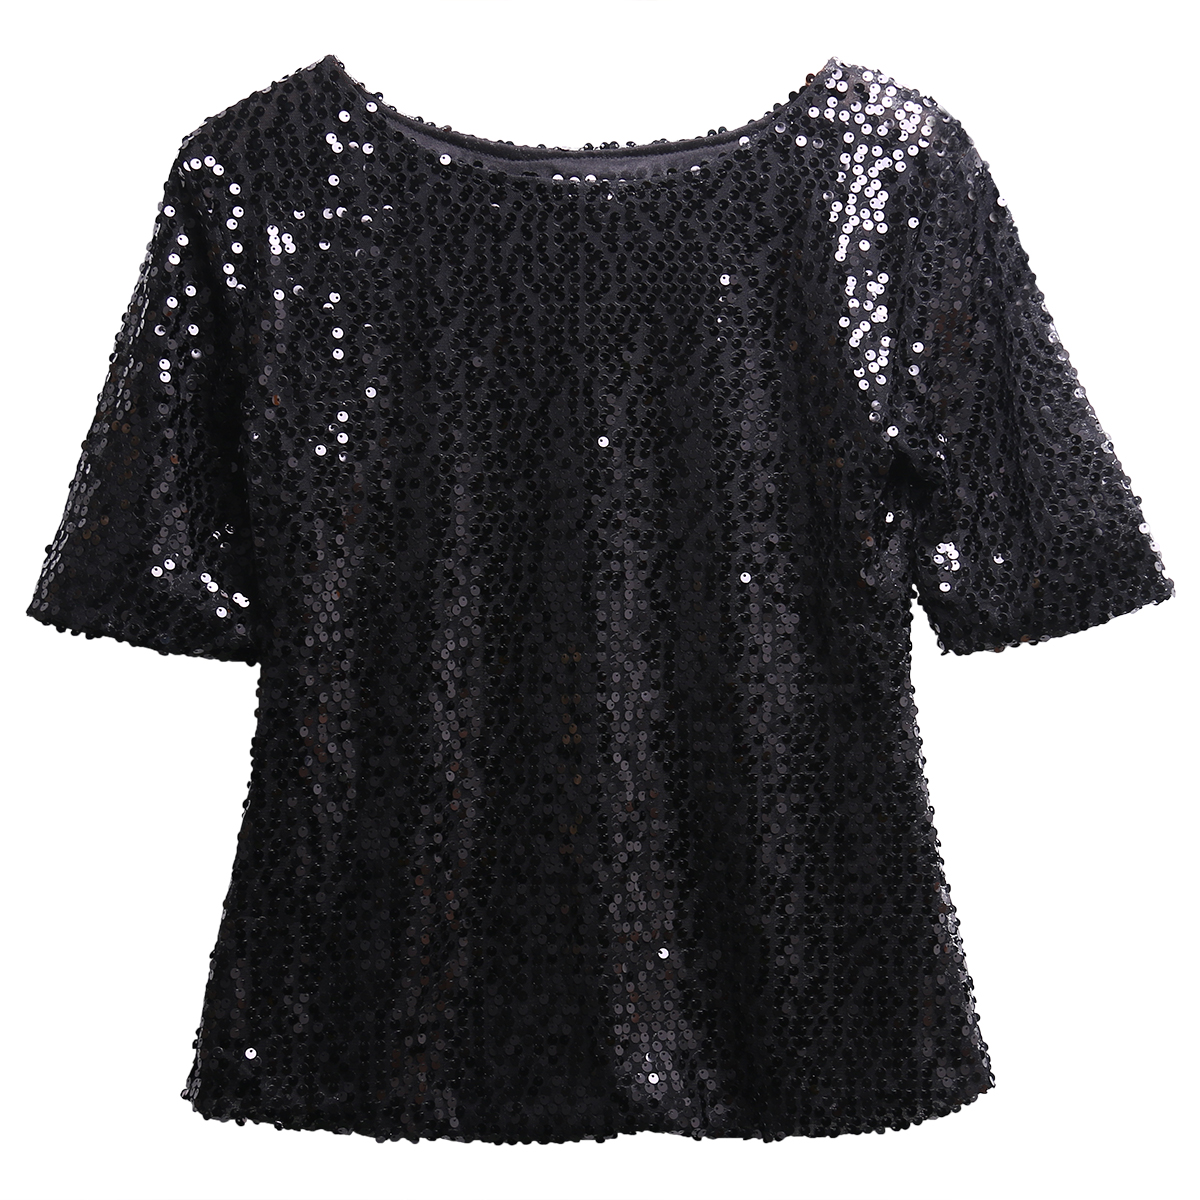 416377a7a8f Fashion Ladies Off shoulder Glistening Sequin Slim Shirt Tops Tee T Shirts  Black Silver Pink-in T-Shirts from Women s Clothing on Aliexpress.com